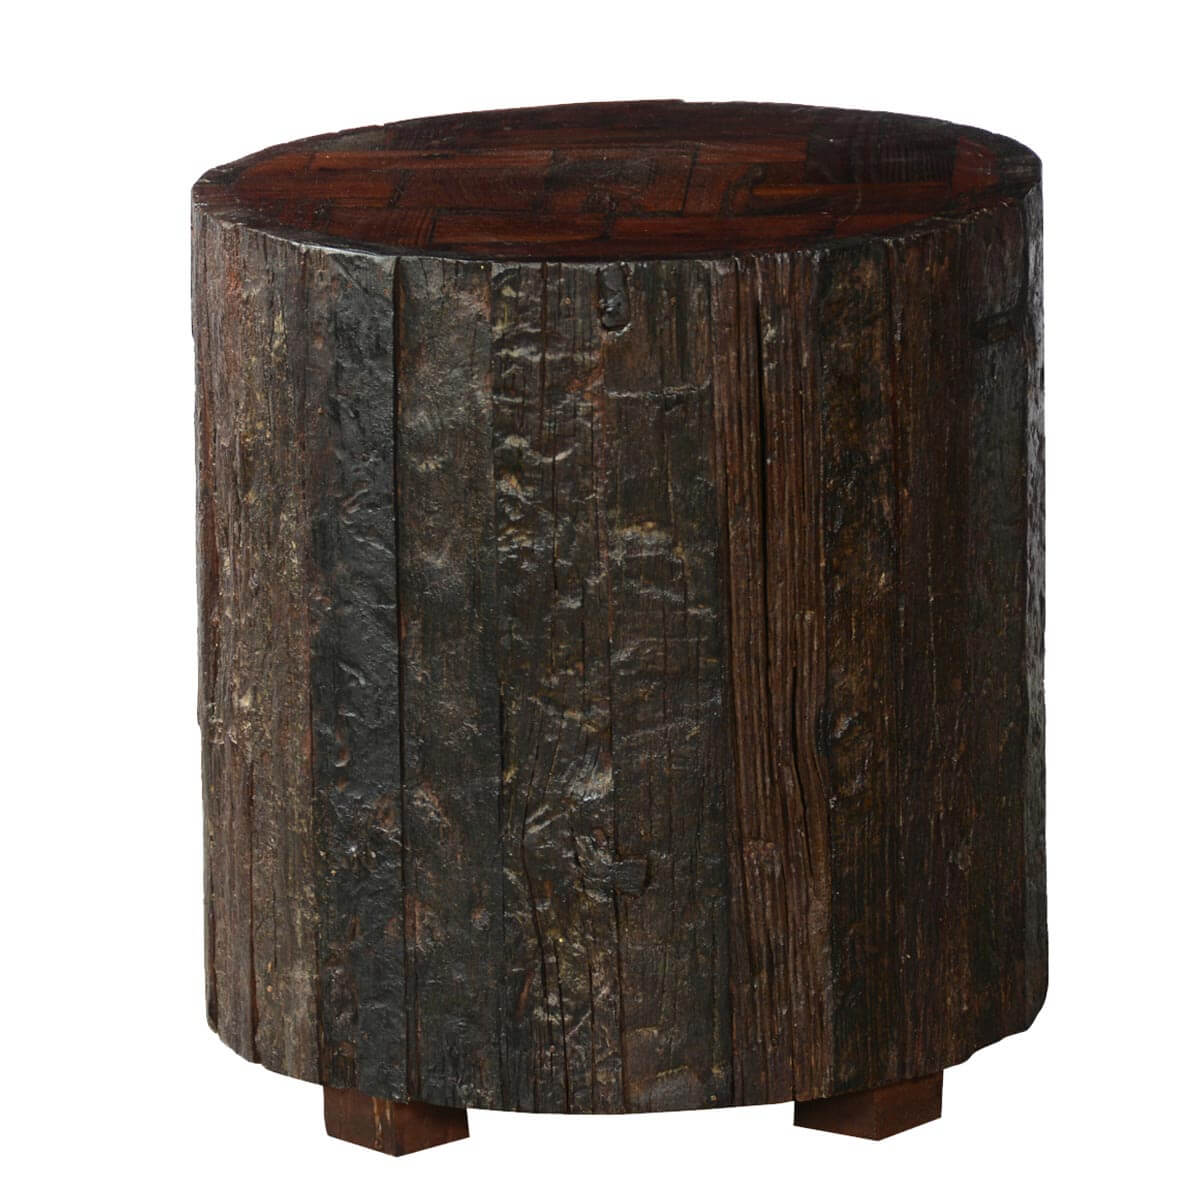 Log cabin rustic reclaimed wood stump standing end table for Wood stump end table